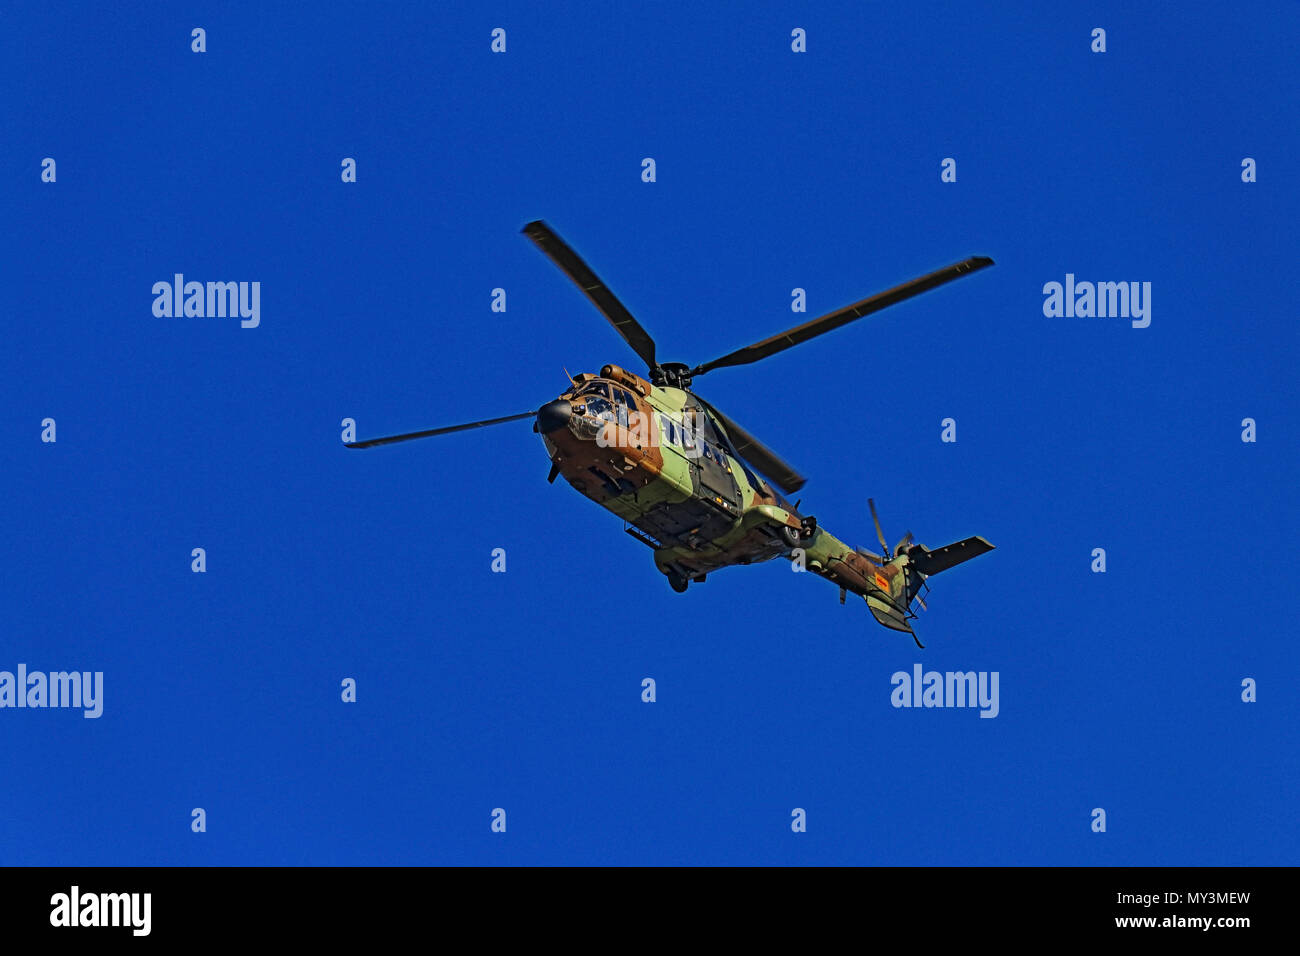 Military helicopter in flight - Stock Image